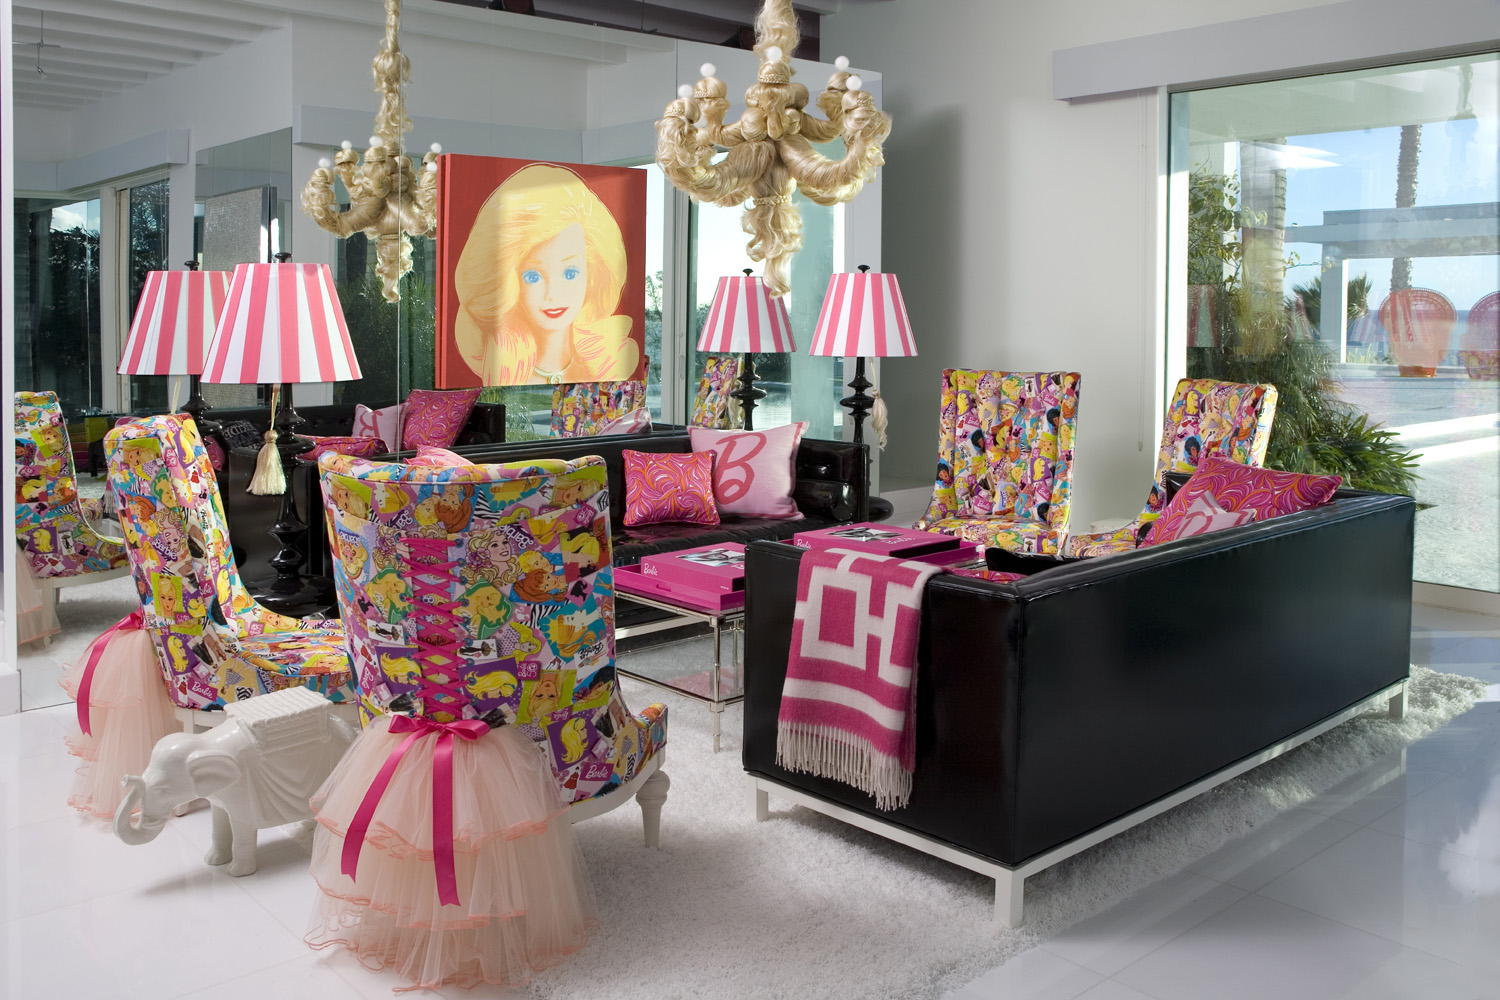 Barbieu0027s Living Room At Her Real Malibu Dream House Decorated By Jonathan  Adler